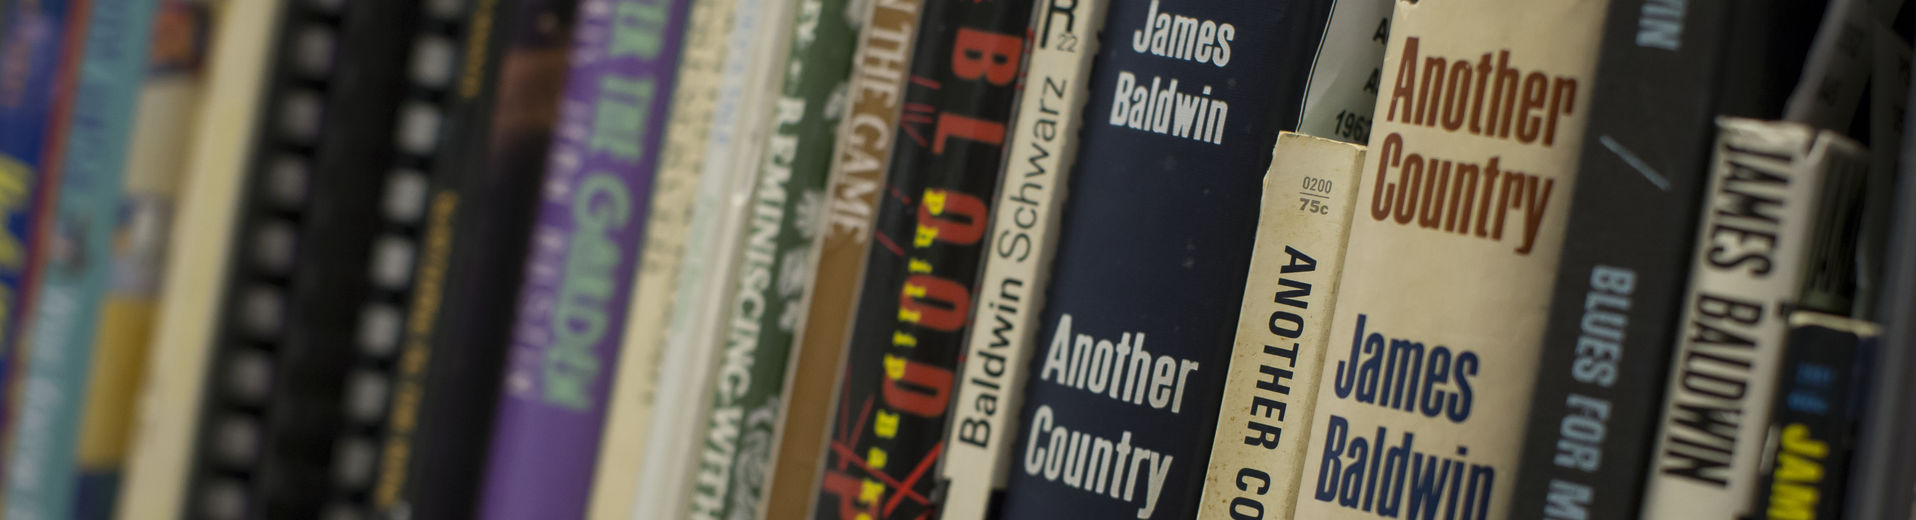 Books on a shelf in a library at Temple University